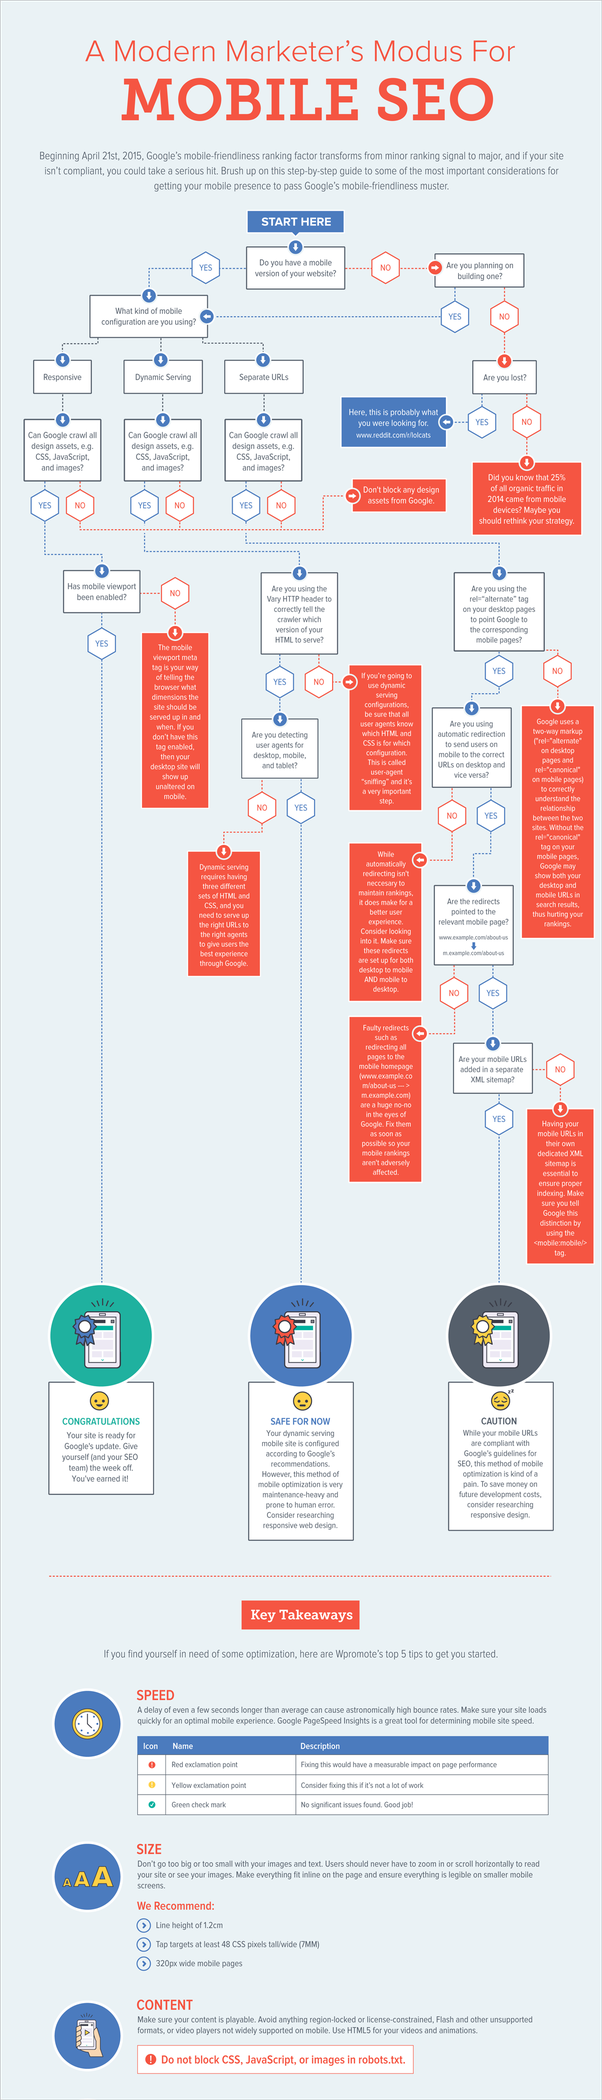 What's the best way to make an interactive flow chart? - Quora